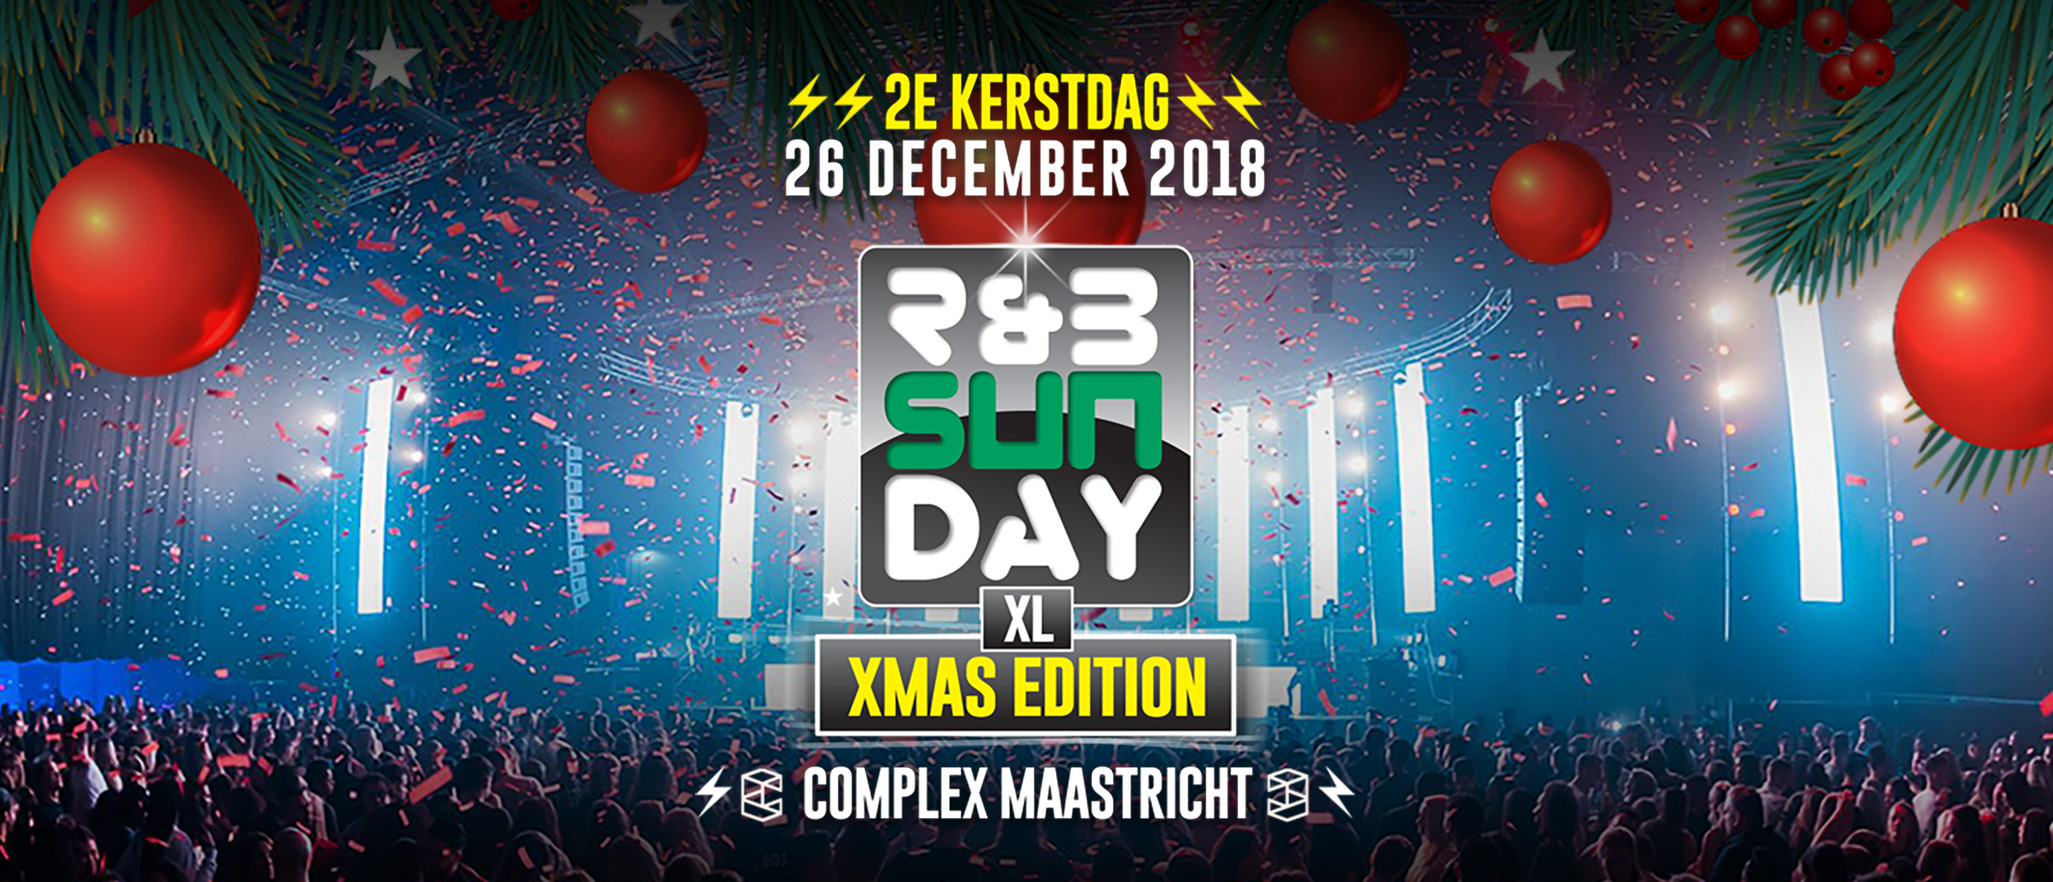 R&B Sunday XL – XMas Edition | Complex Maastricht